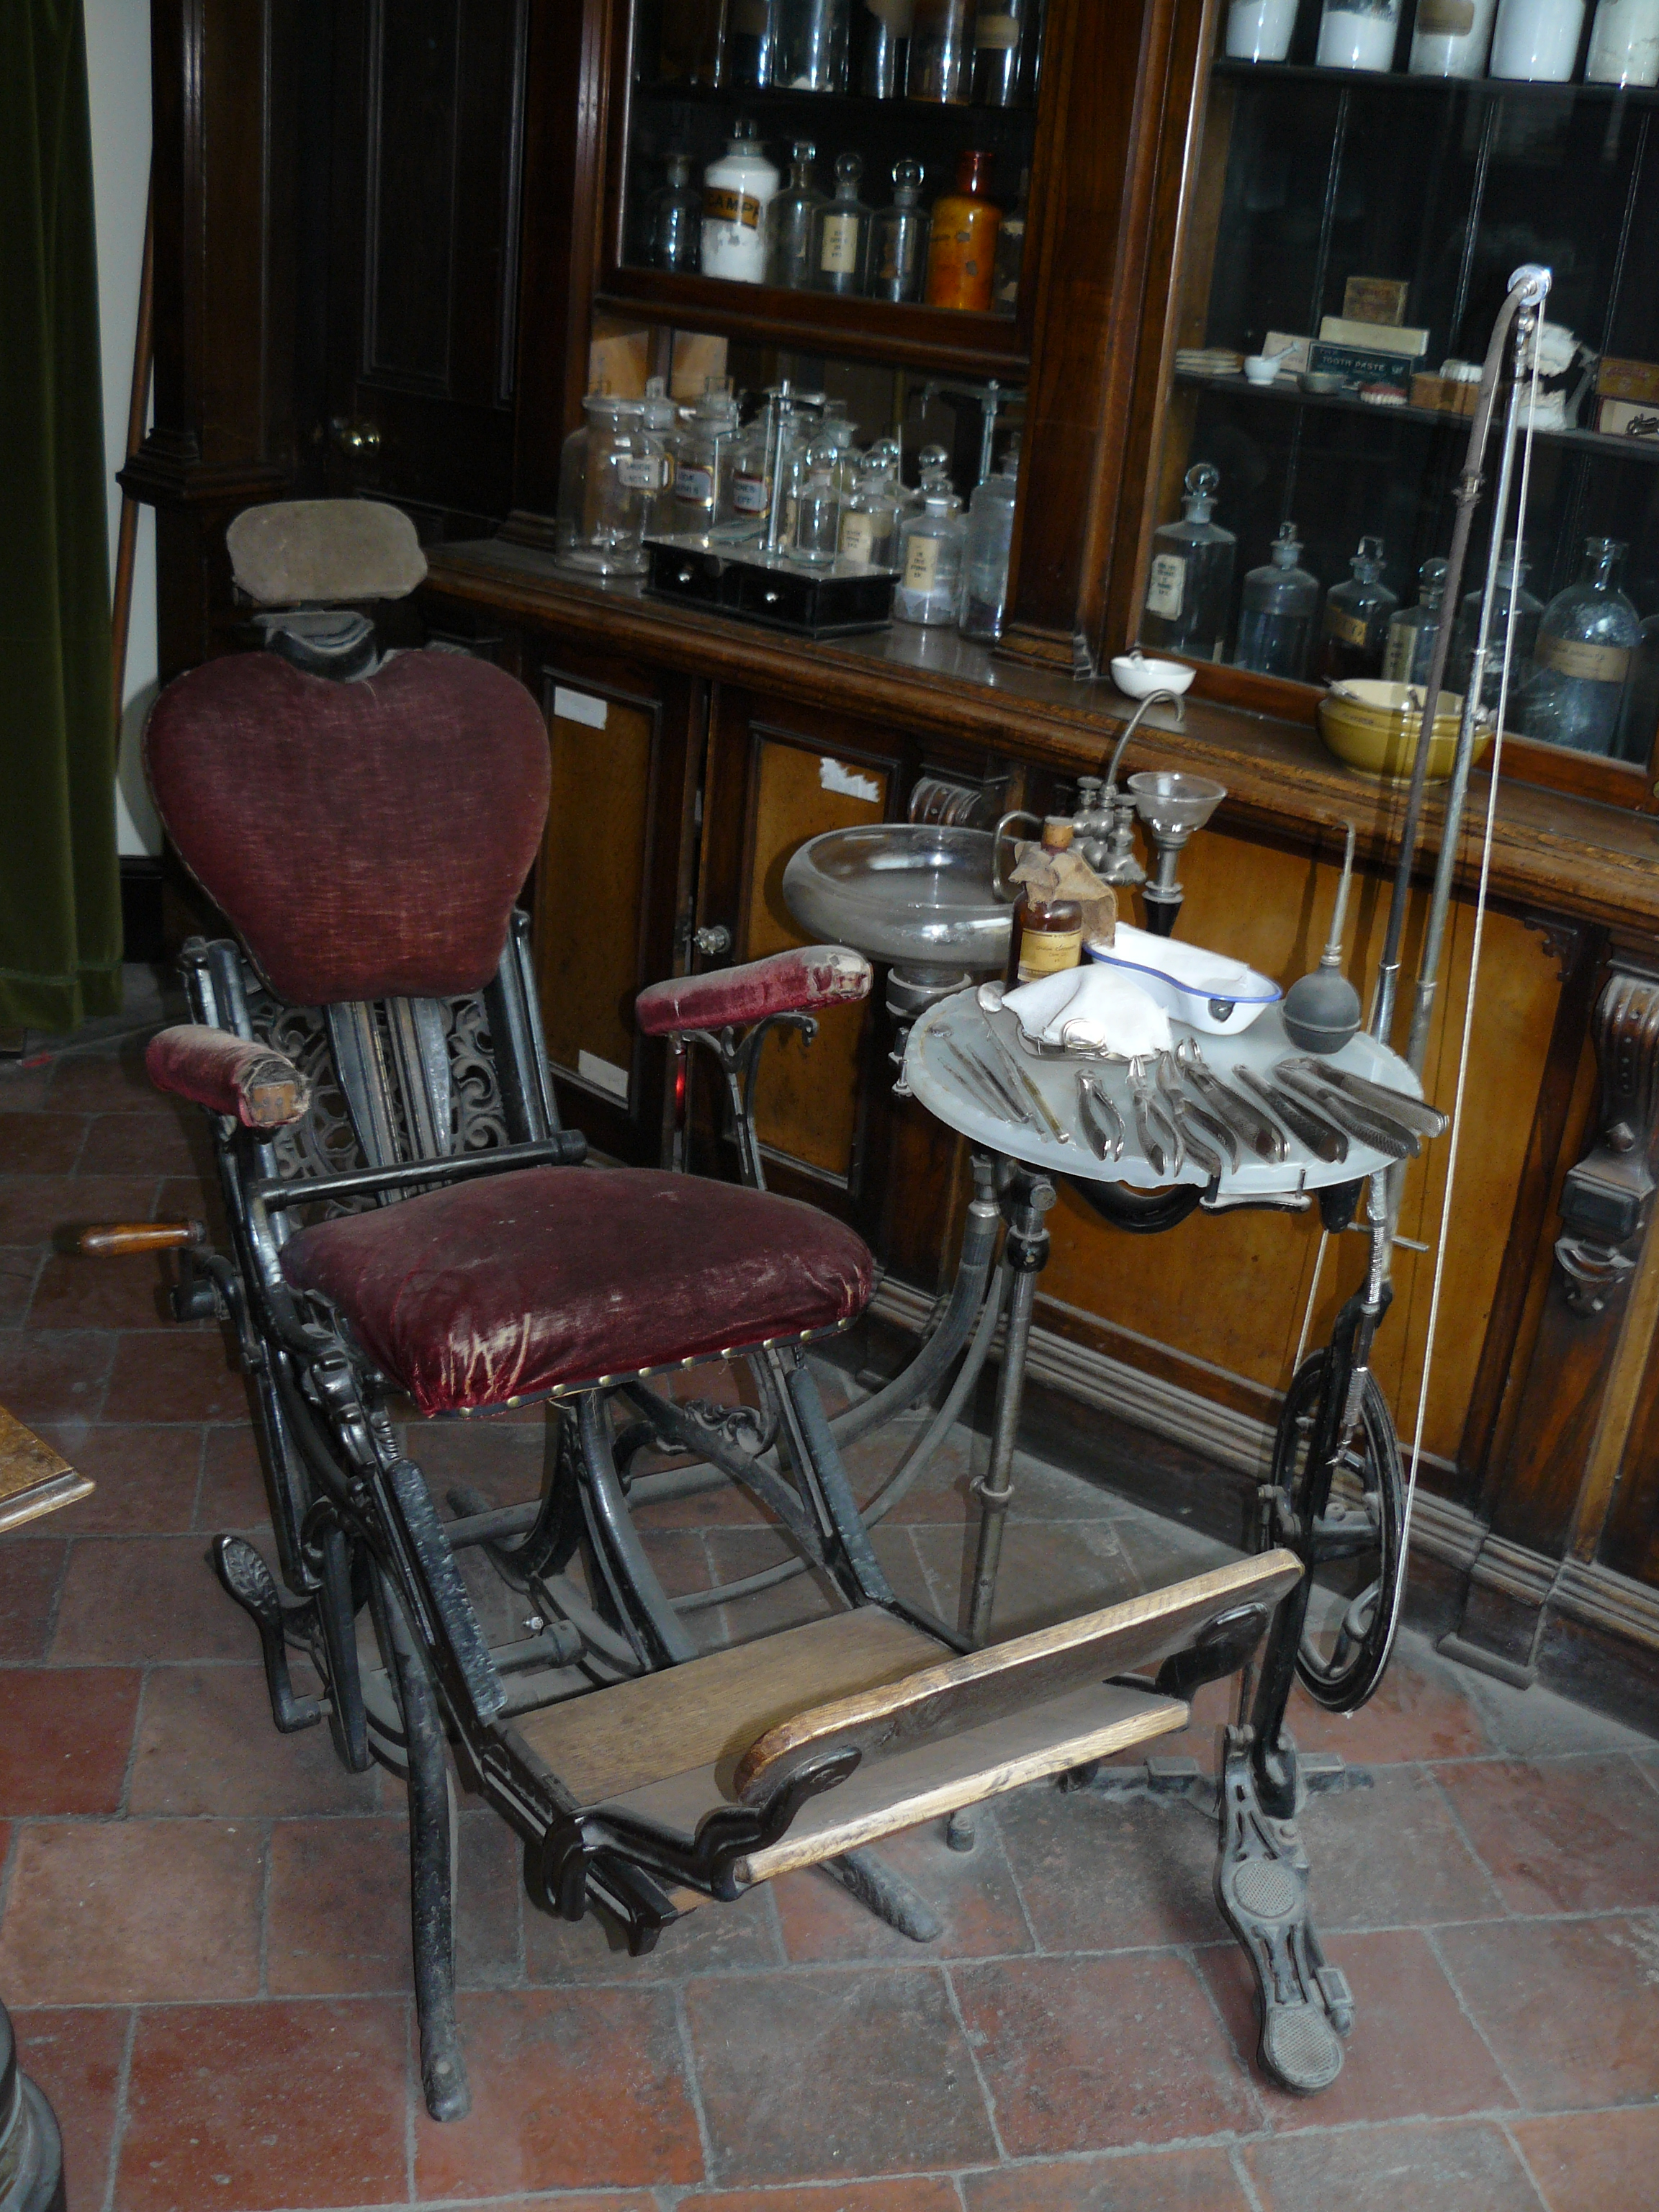 VICTORIAN DENTIST CHAIR O W by GRANNYSATTICSTOCK on DeviantArt